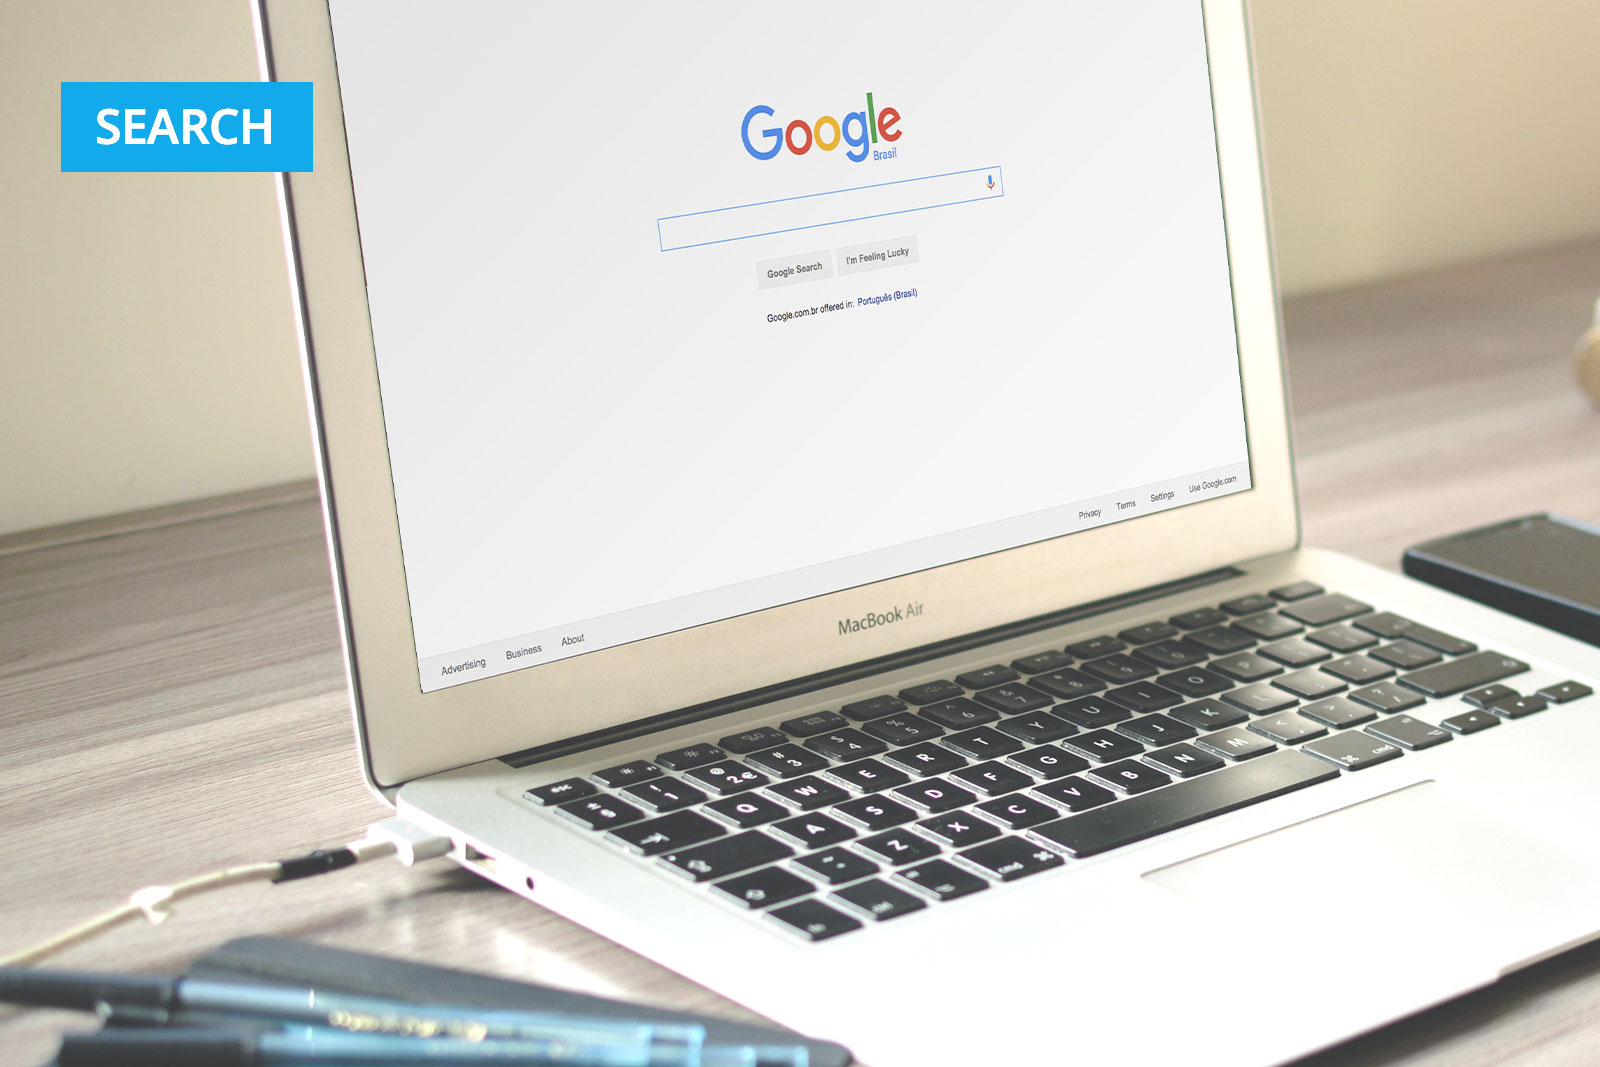 7 Creative Ways to Use Paid Search That Google Won't Tell You